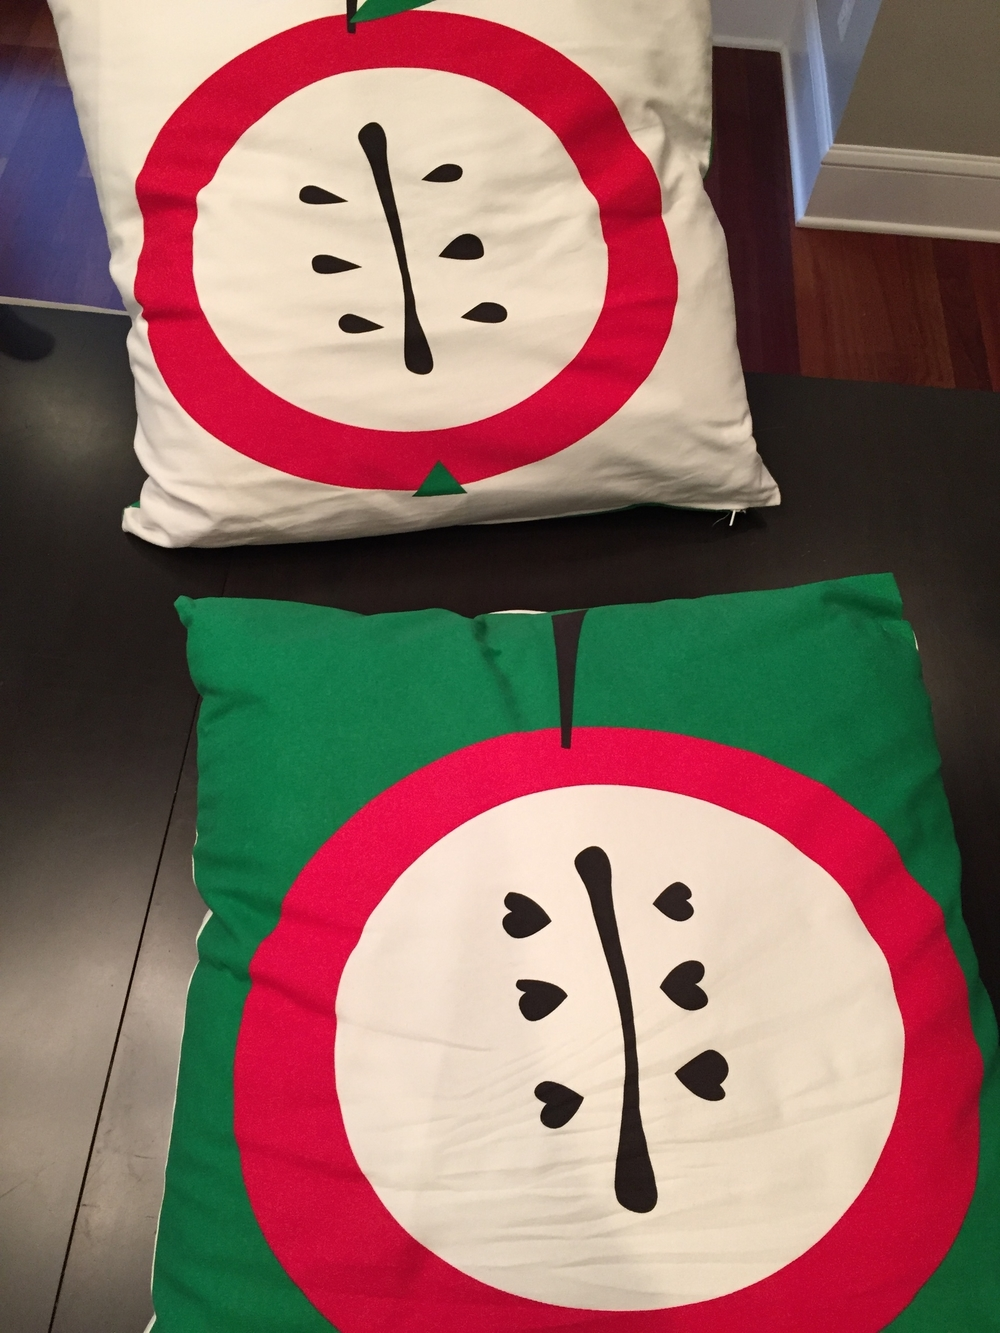 Last year I found these large apple printed pillowcases at Ikea for $5 each. I coated the pillows with Scotch Guard and now they are on the front porch chairs.